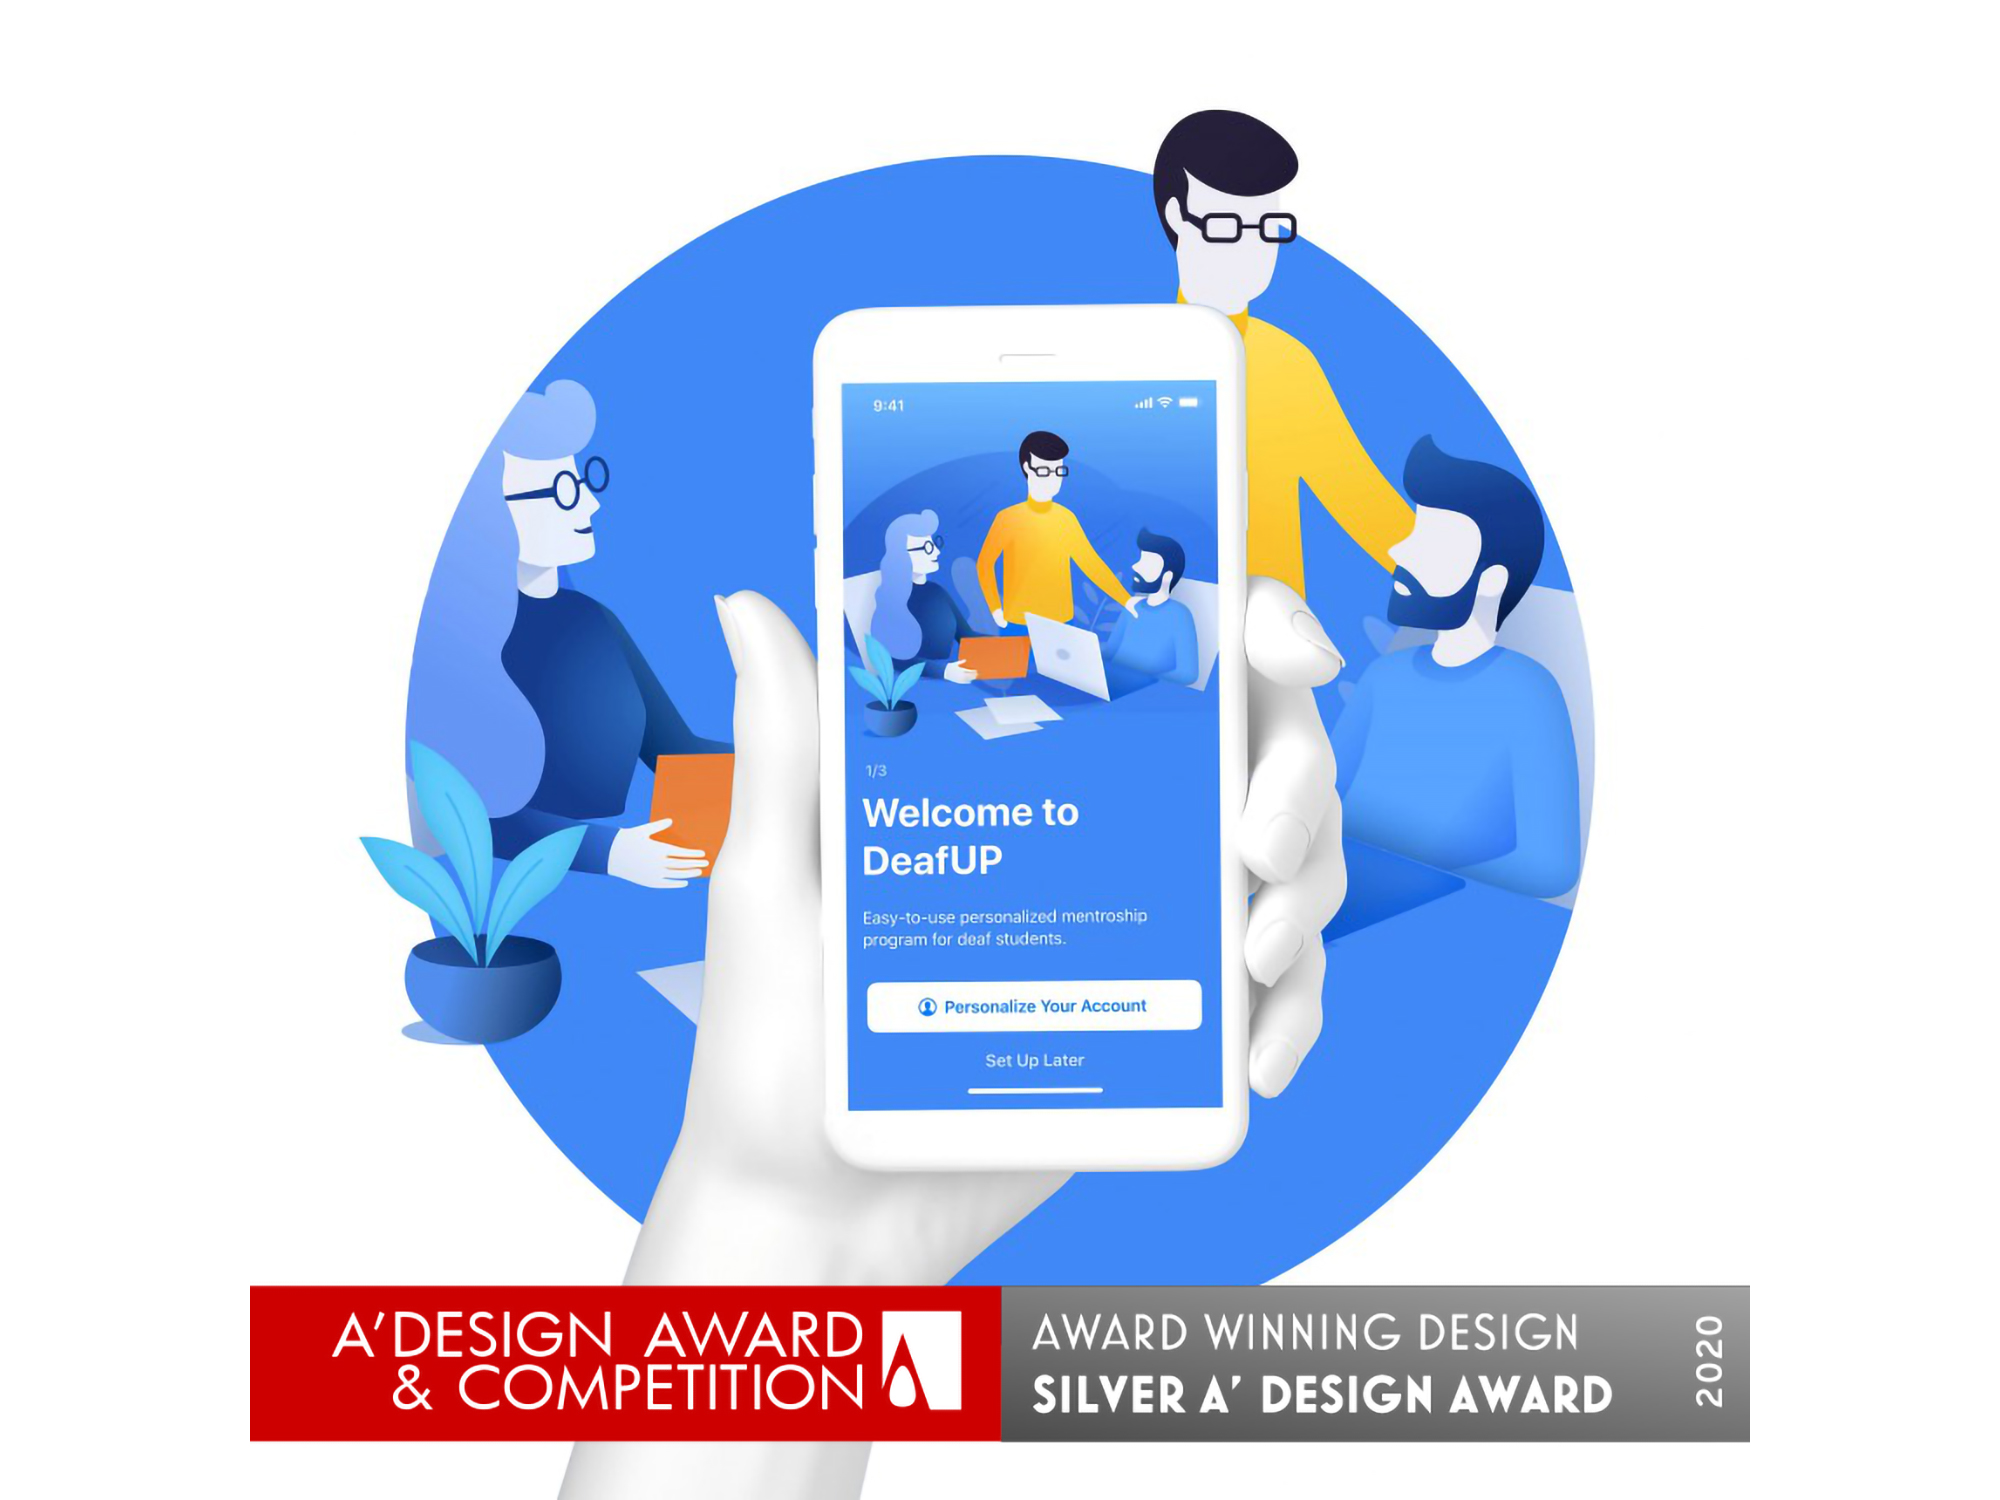 Brandly Collective wins A'Design Award for the DeafUP application